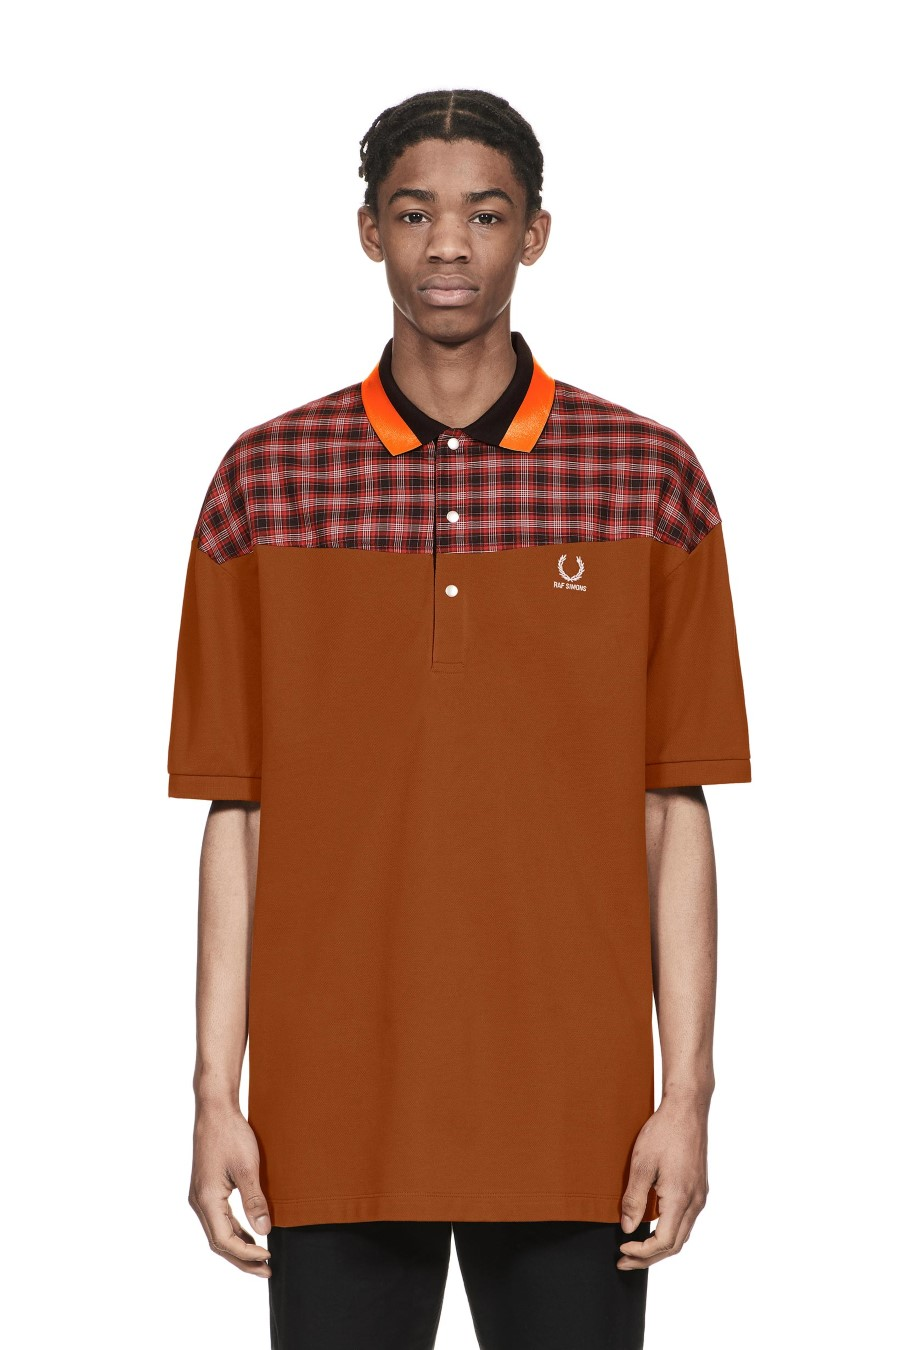 Fred Perry x Raf Simons Automne-Hiver 2018-2019